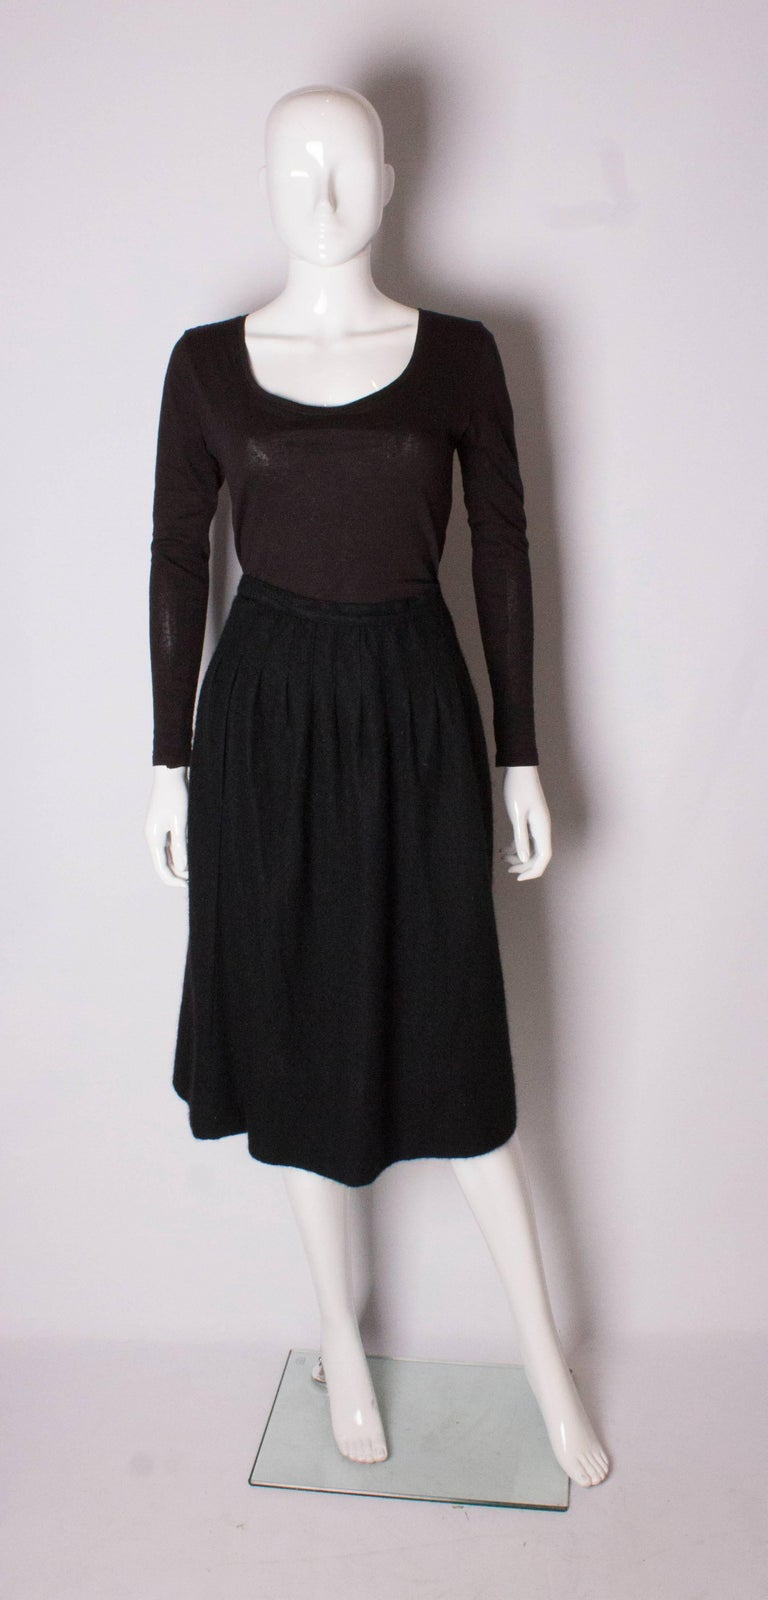 A cosy cashmere skirt by Yves Saint Laurent Rive Gauche. The skirt is unlined, and has pleats on the front  and back. The skirt has a zip opening on the left hand side.